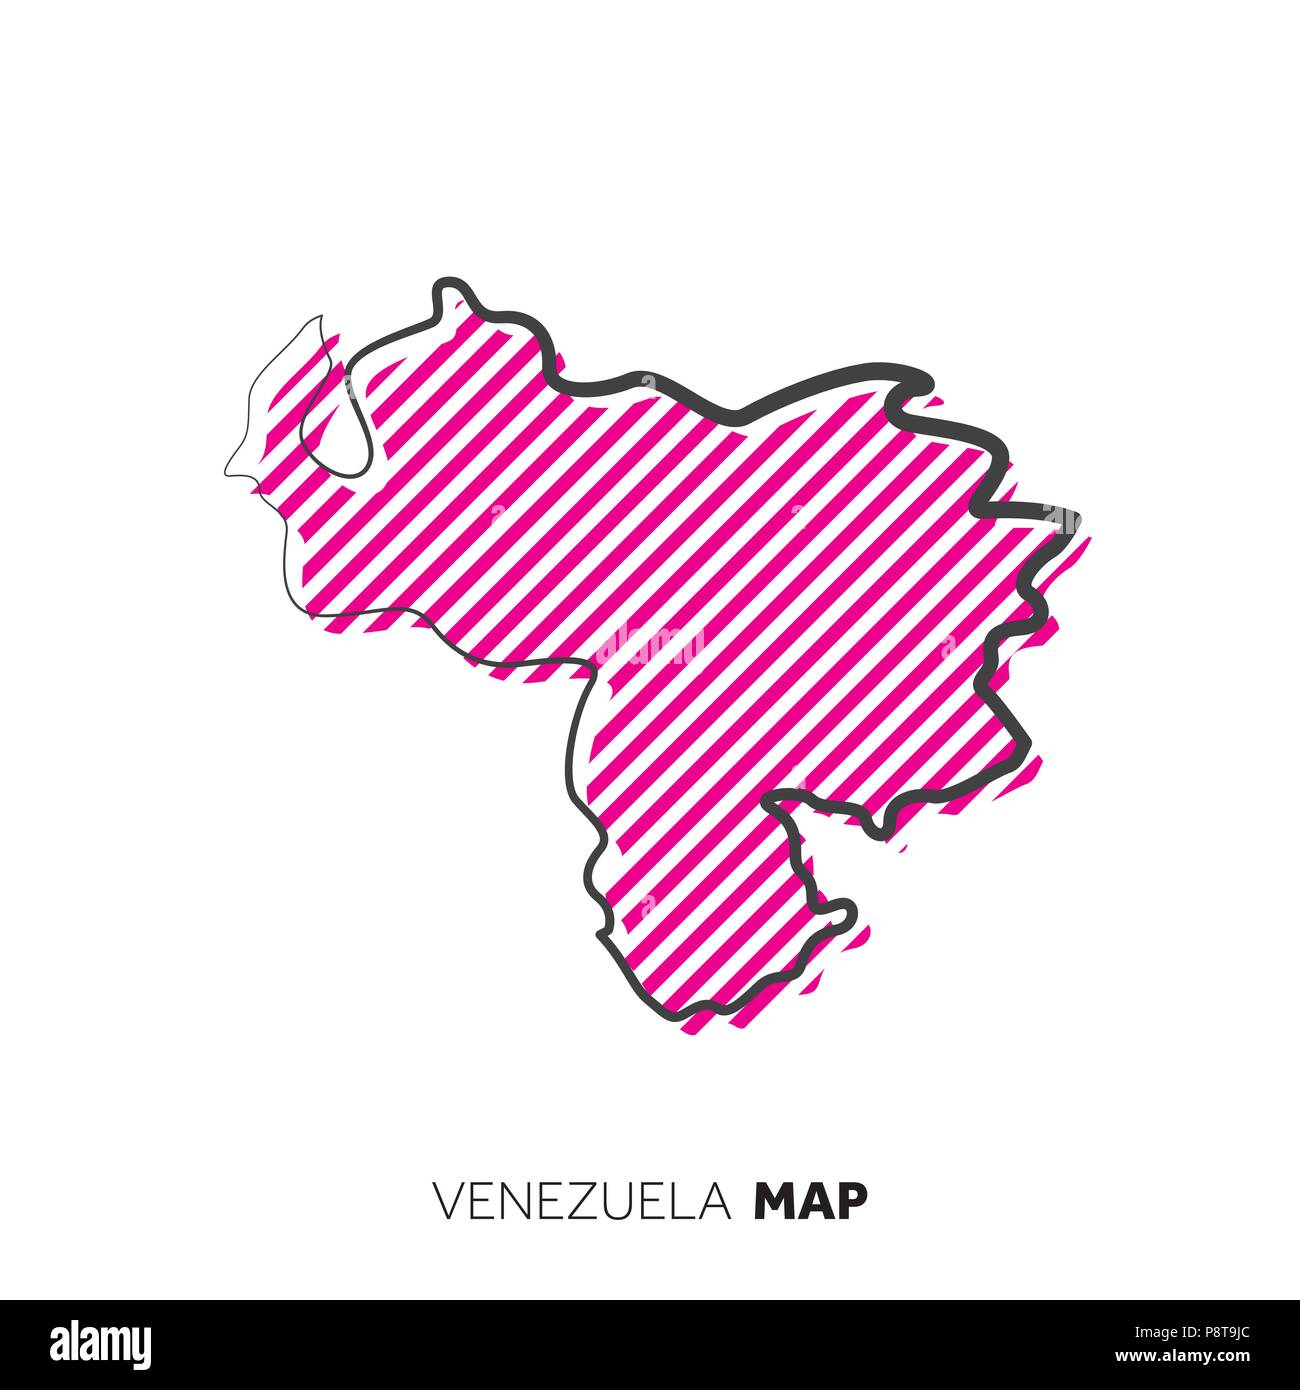 Venezuela Vector Country Map Map Outline With Dots Stock Vector Art